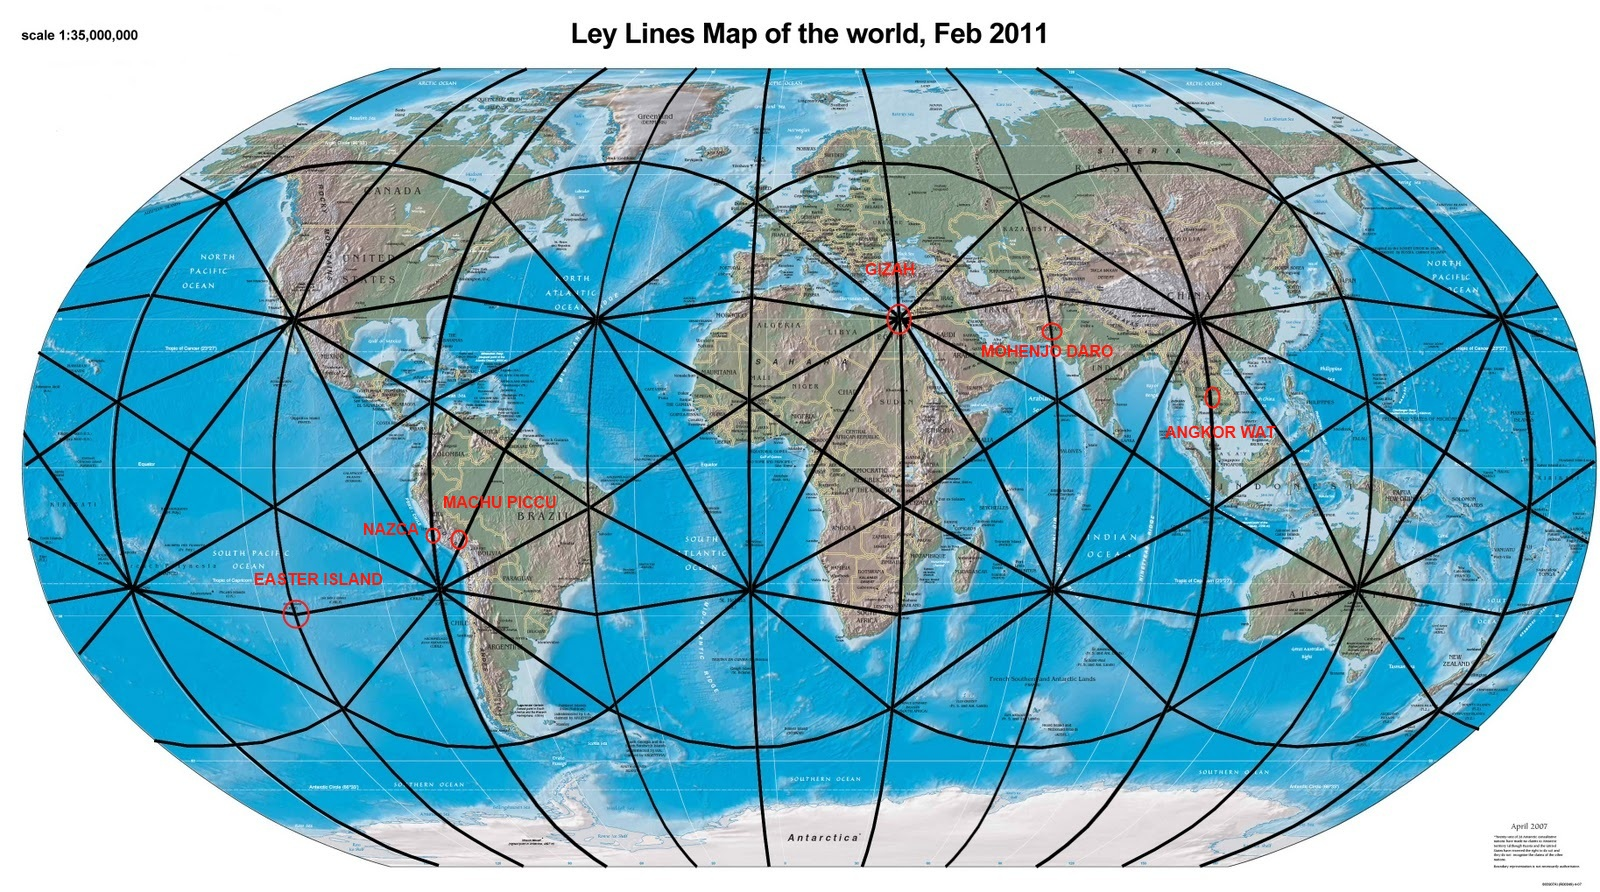 Ley Lines 1 - World View